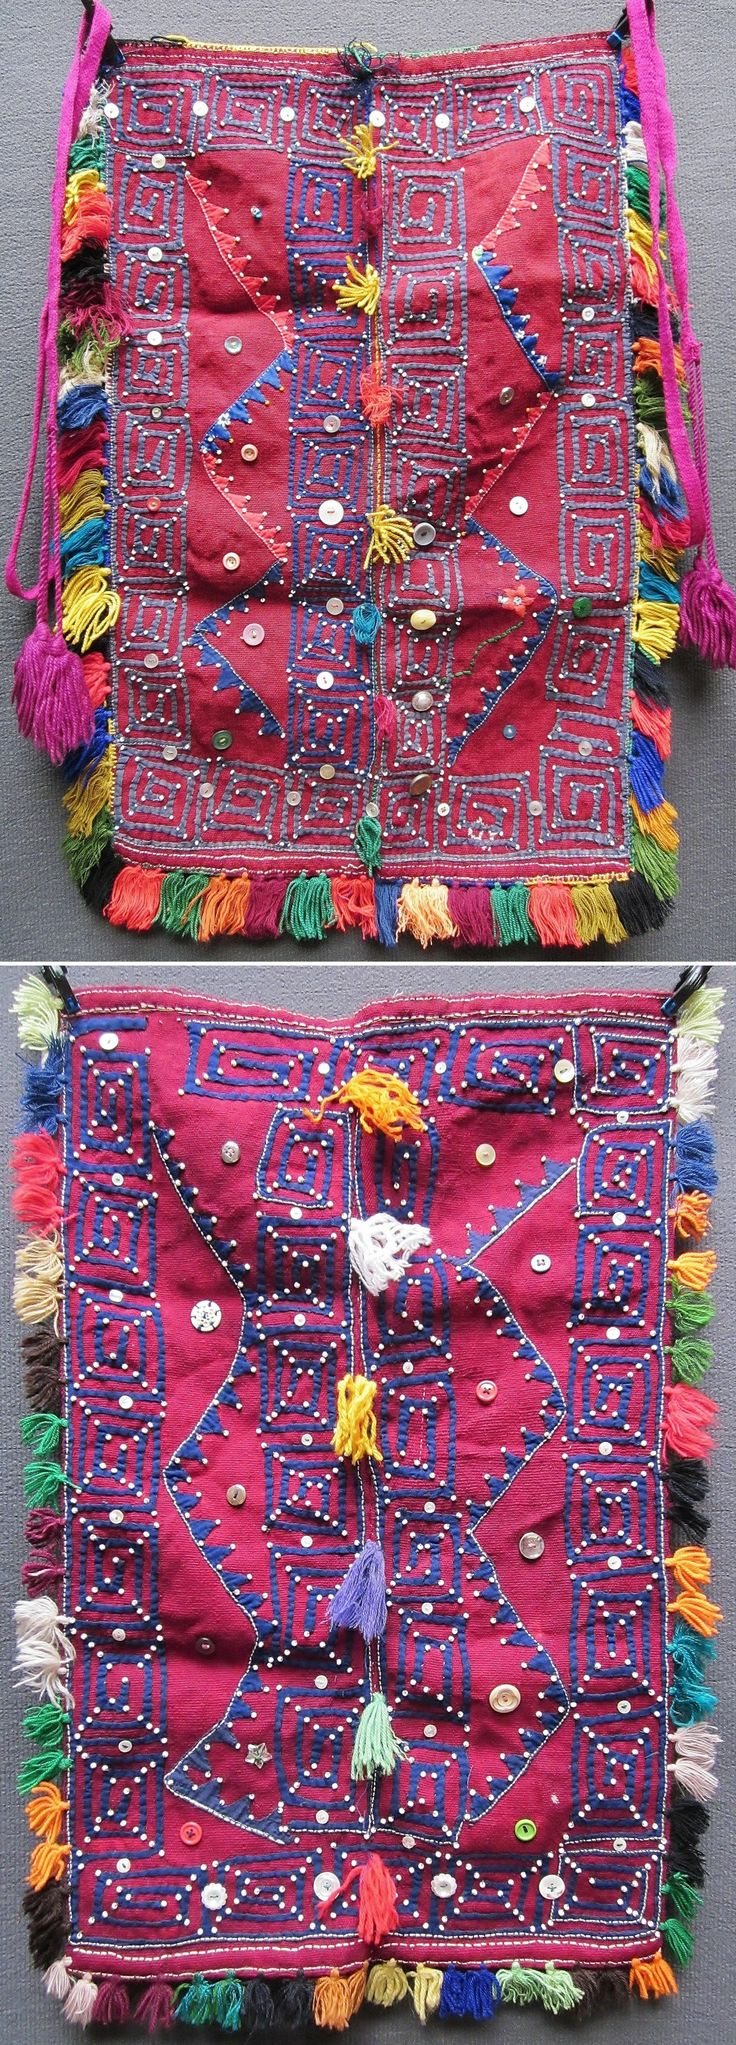 Two traditional woollen 'önlük' (woman's aprons) from the western part of the Sivas province.  Rural, Alevi-Türkmen, mid-20th century.  Adorned with (cotton) patchwork, orlon tassels, bottons and glass pearls.  (Inv.nr. önL001&005 - Kavak Folklor Ekibi & Costume Collection-Antwerpen/Belgium).